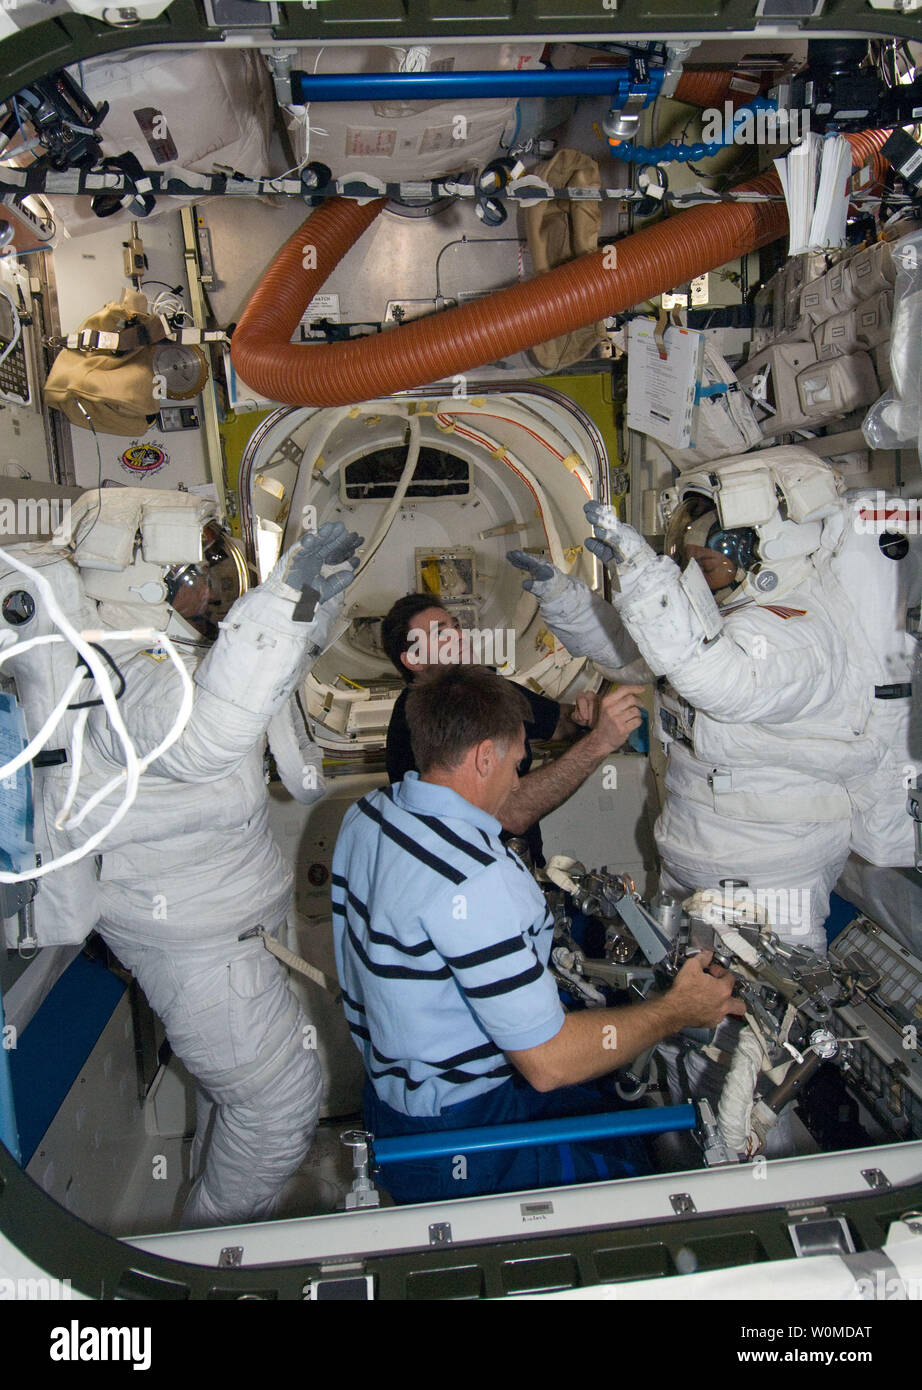 Spacesuits Stock Photos & Spacesuits Stock Images - Alamy